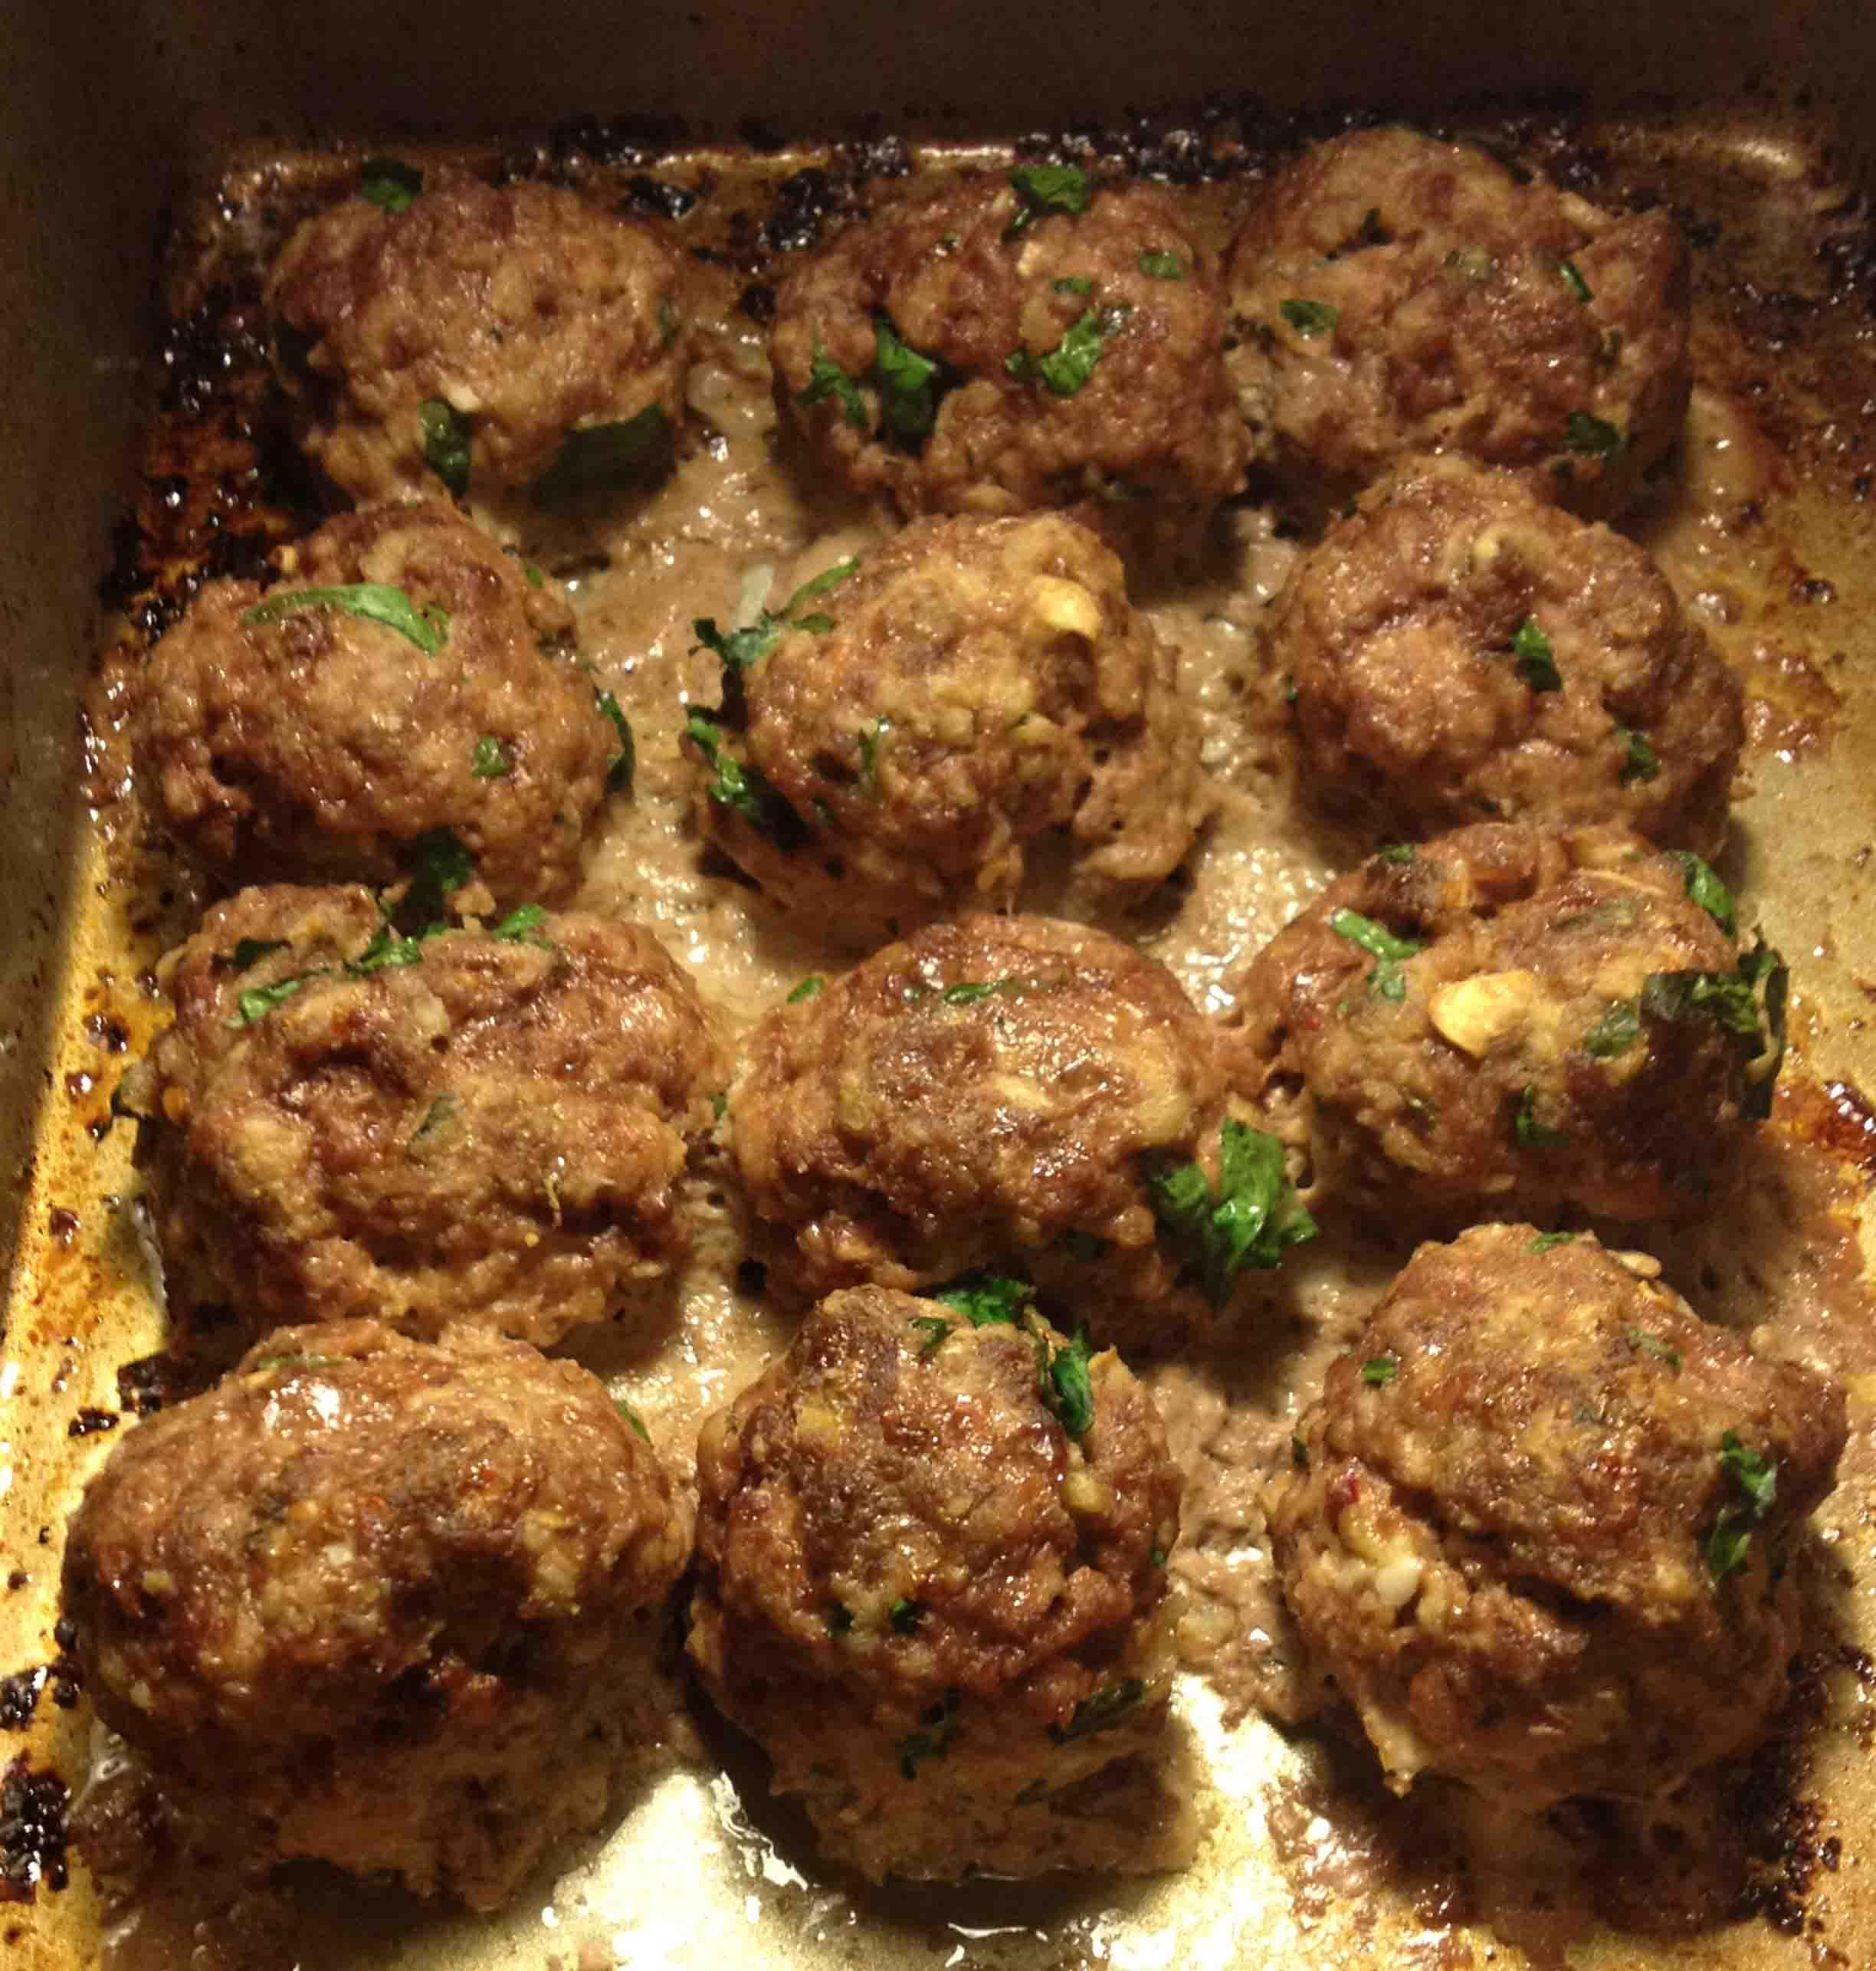 Meat and Veggie Balls - image 2 - student project